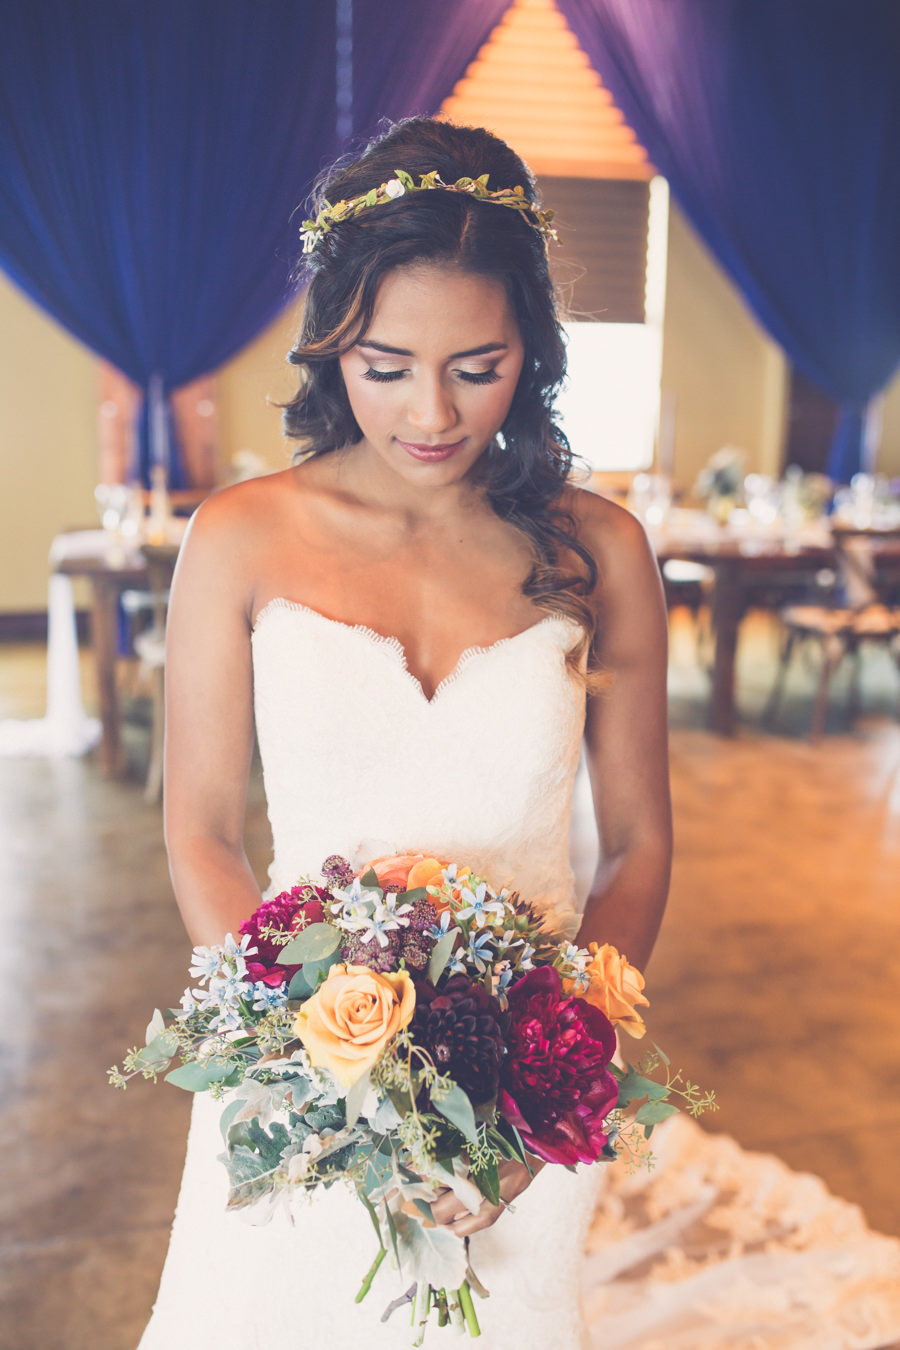 Interior Bridal Wedding Portrait with Small Floral Crown Headband Hair Accessory, Wearing Strapless Wedding Dress, with Peach, Magenta, and Greenery Bouquet | Tampa Wedding Hair and Makeup Michele Renee The Studio